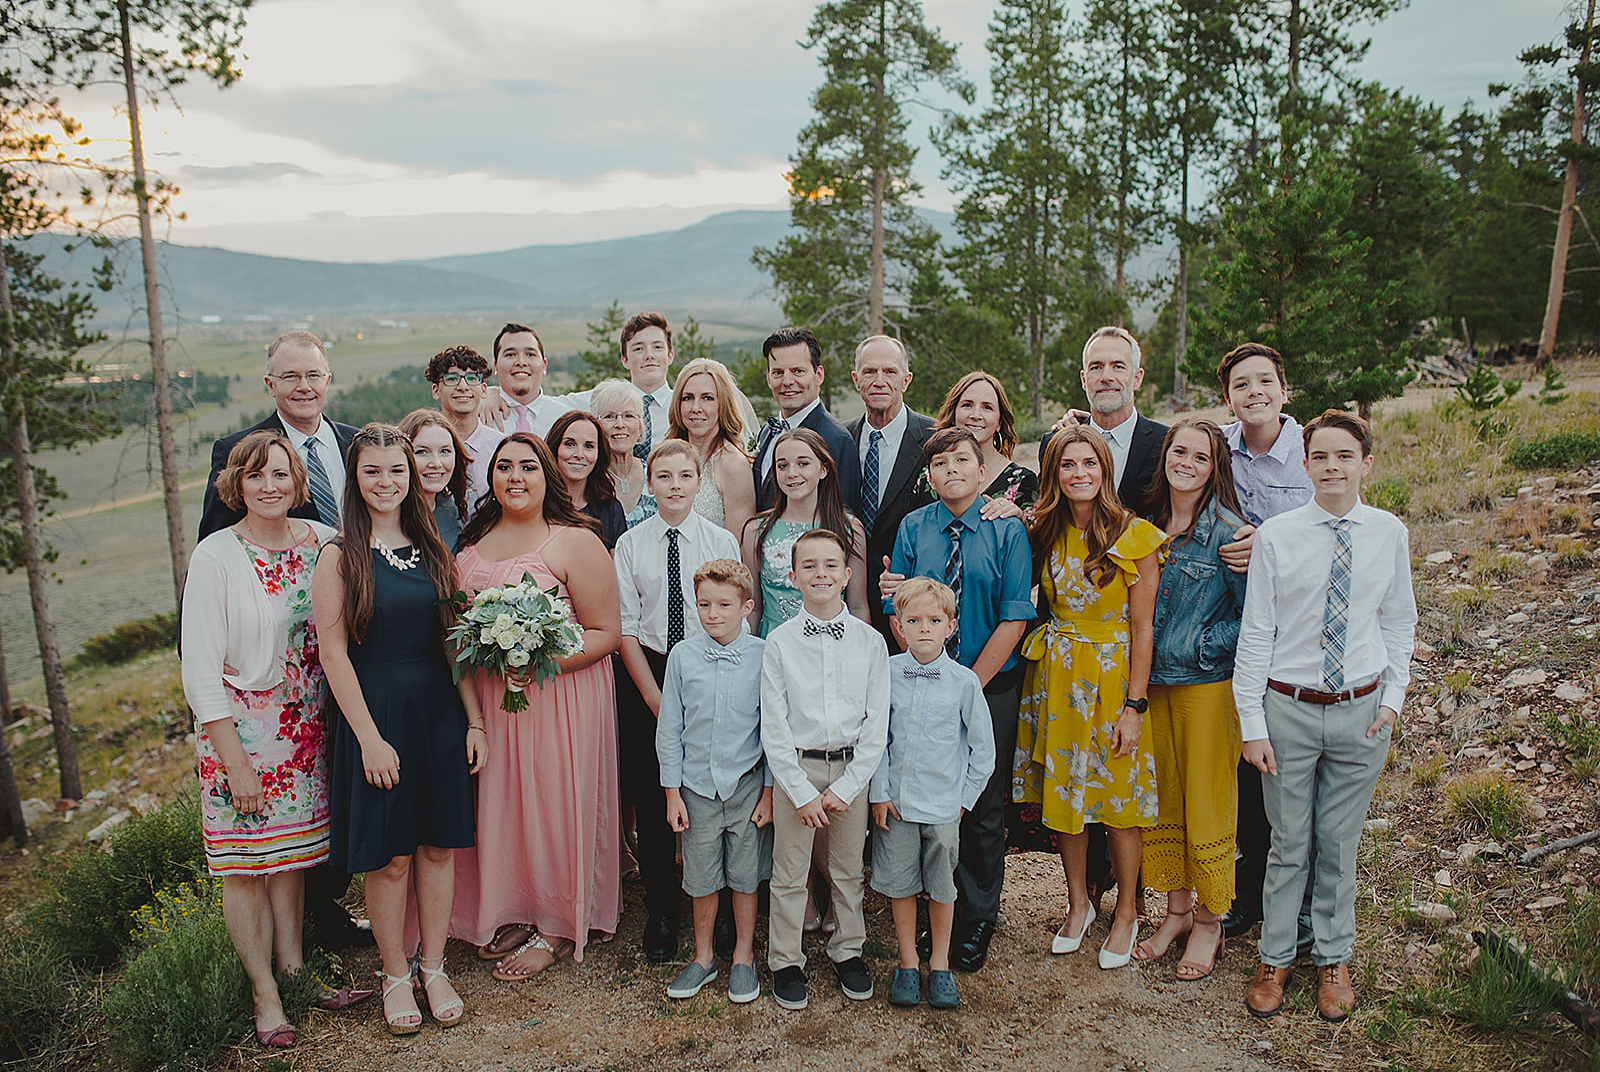 Granby Colorado Wedding Photography by Matthew Speck